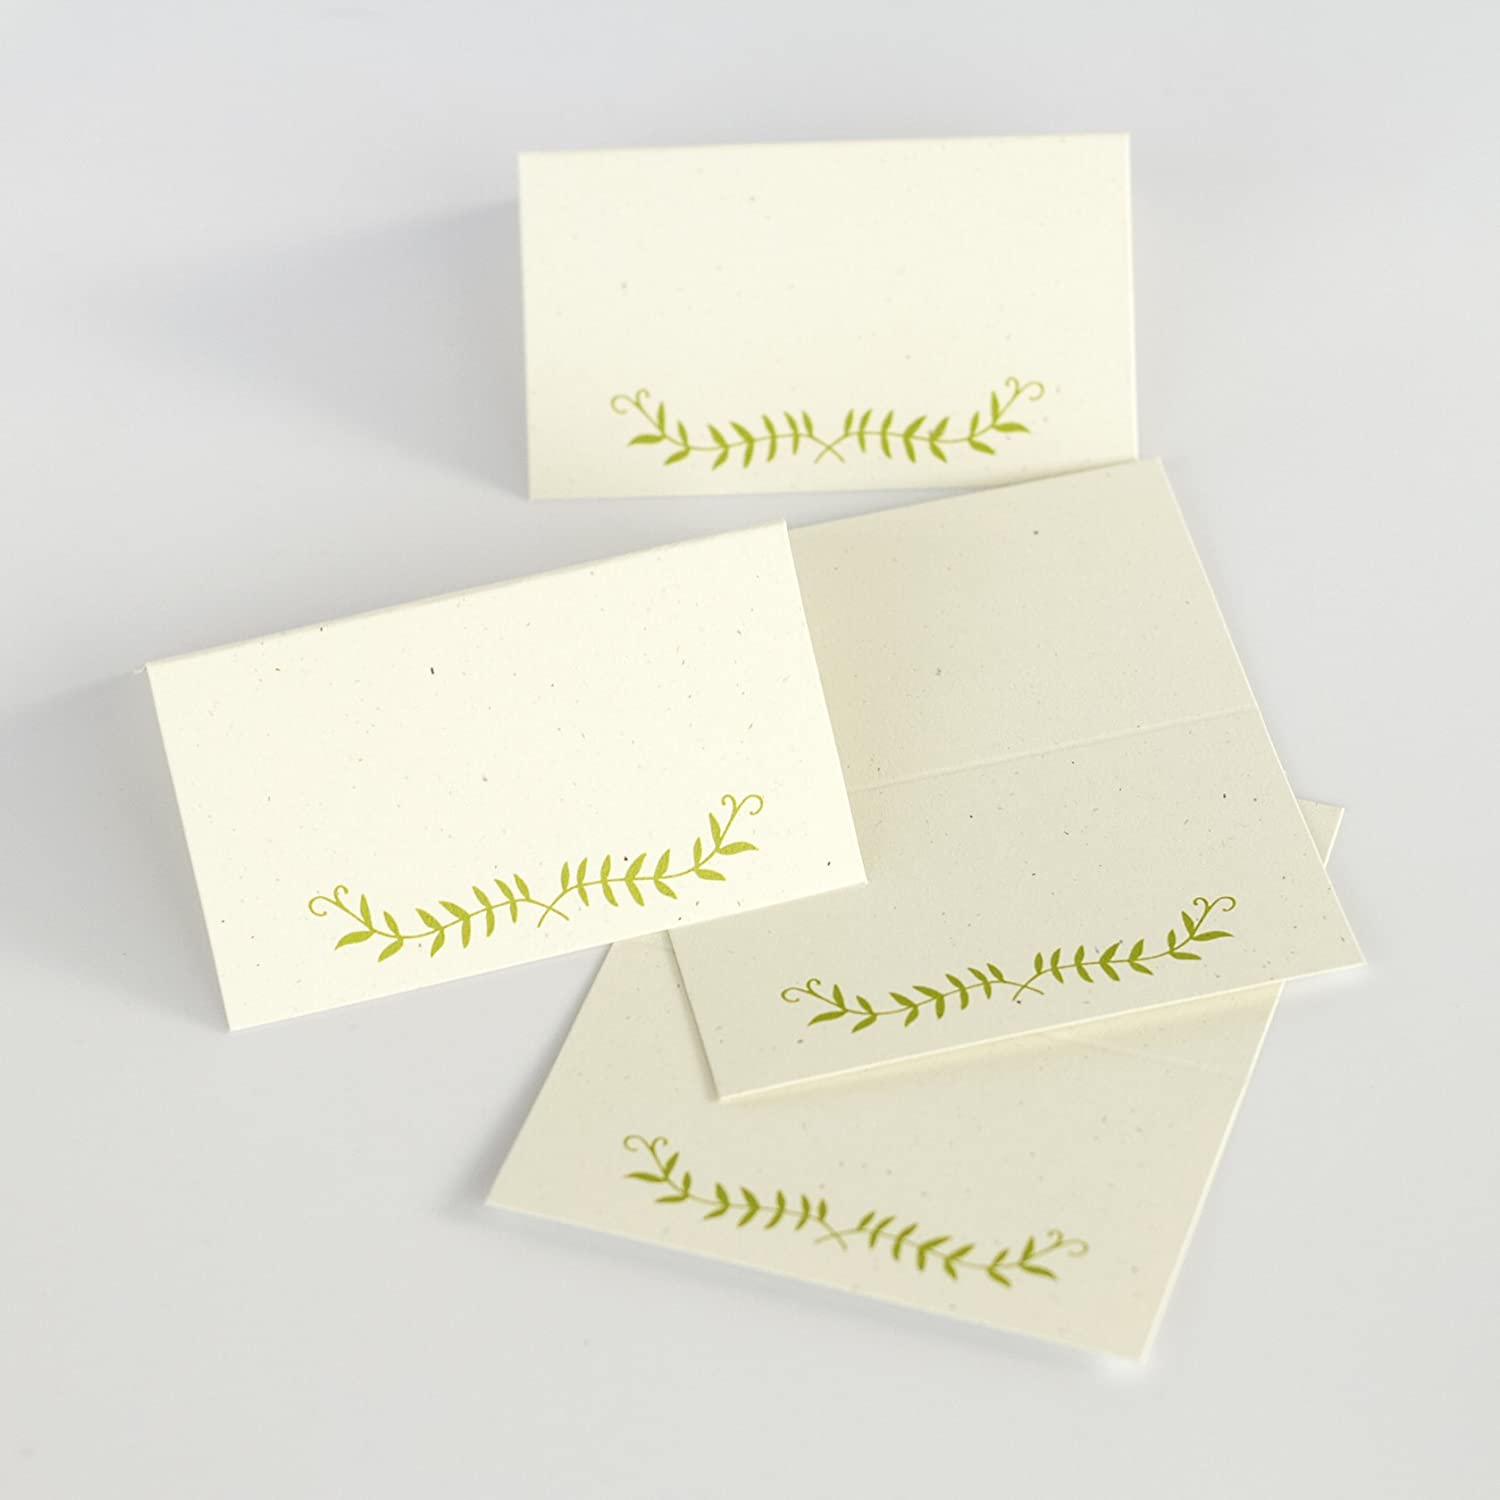 20 Folded Escort Cards, Wedding Place Cards, Write on Escort Cards (4-sp)